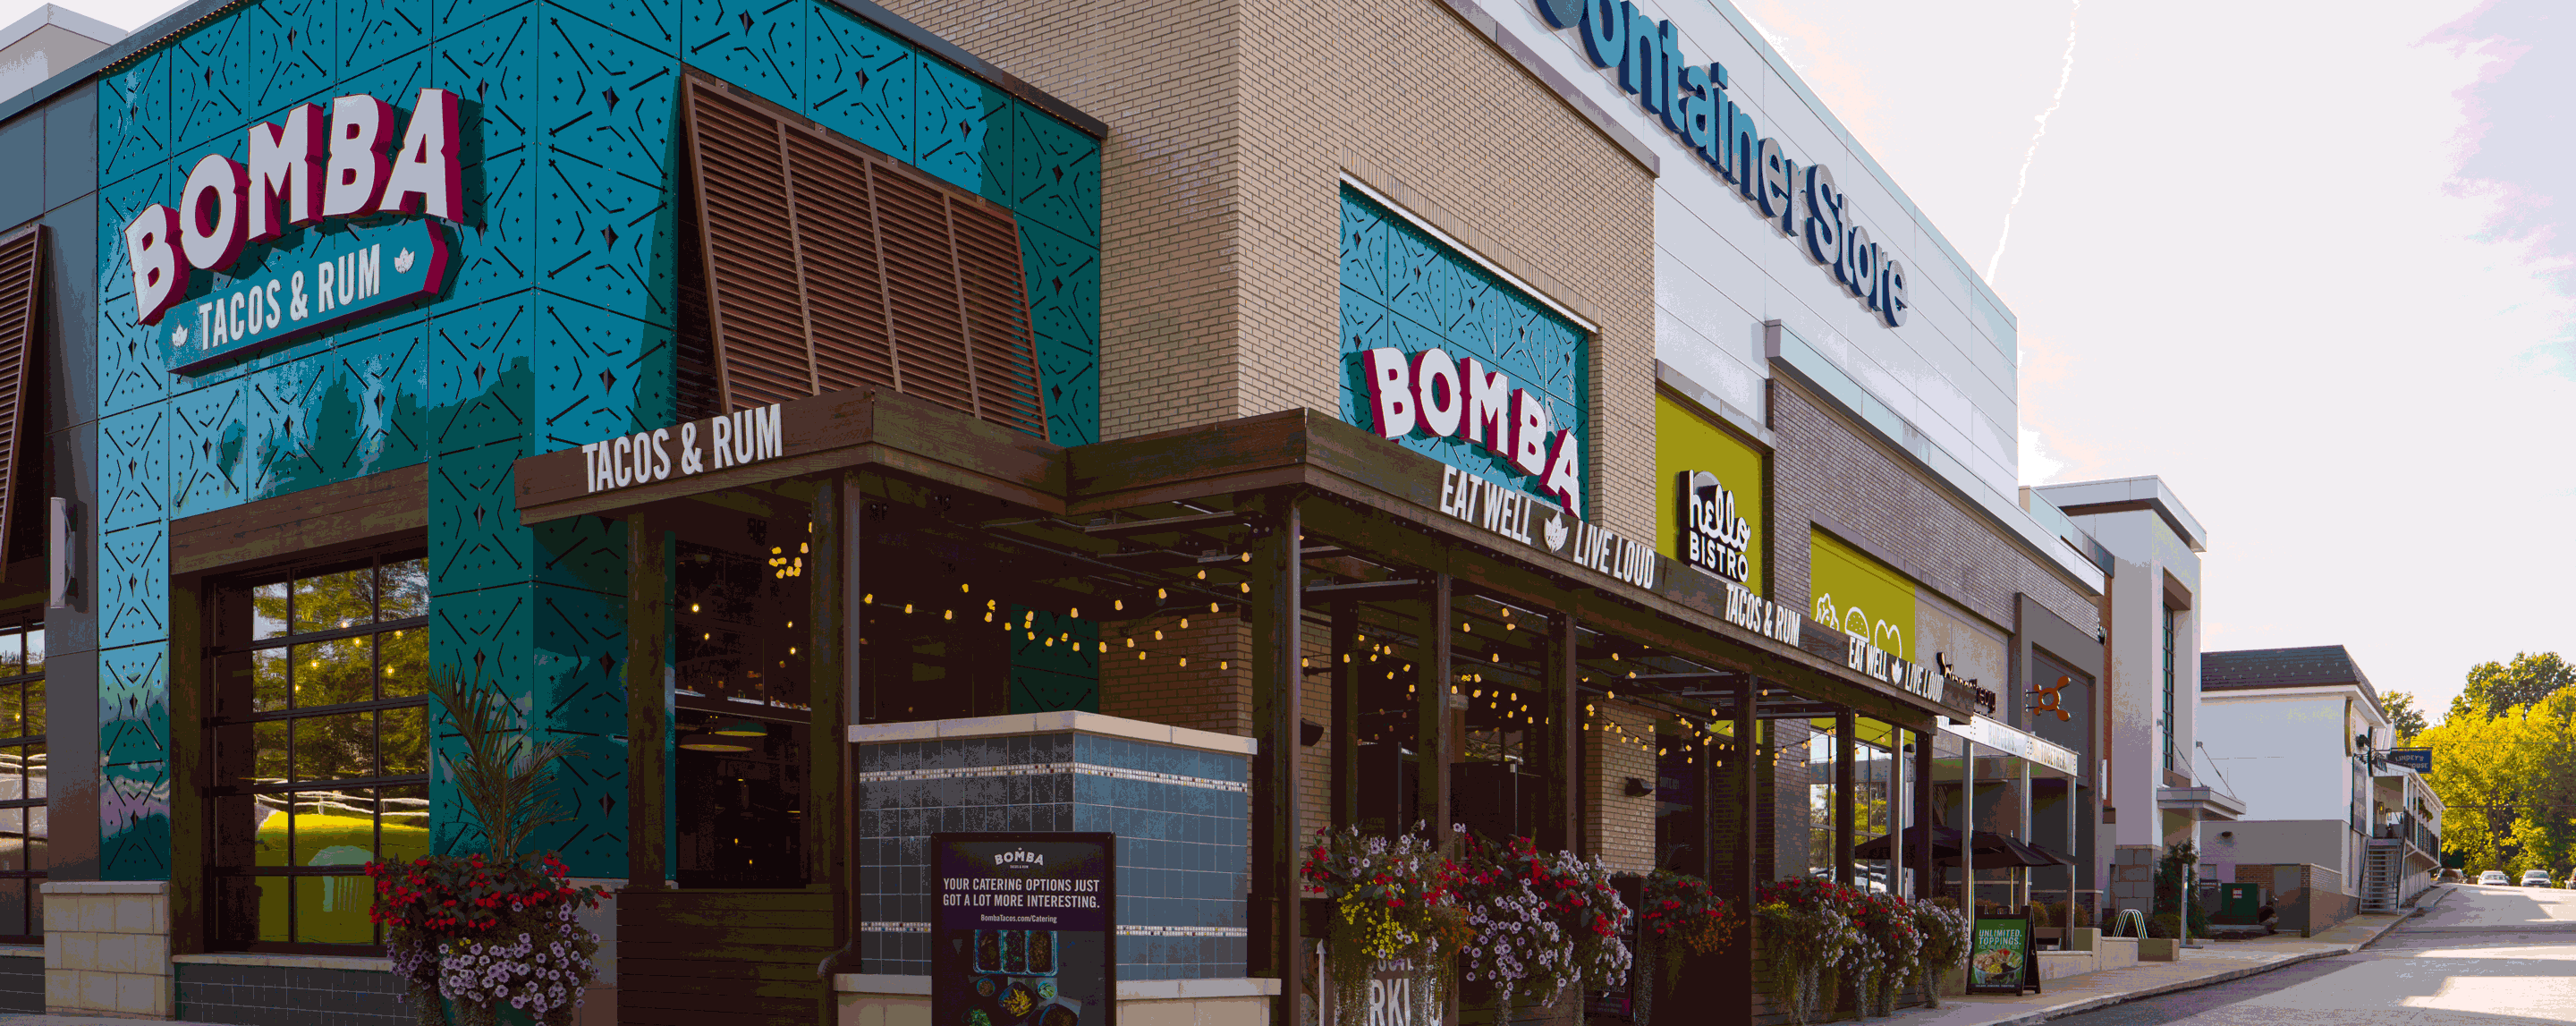 Exterior shot of storefronts including Bomba, Hello Bistro, and the Container Store.